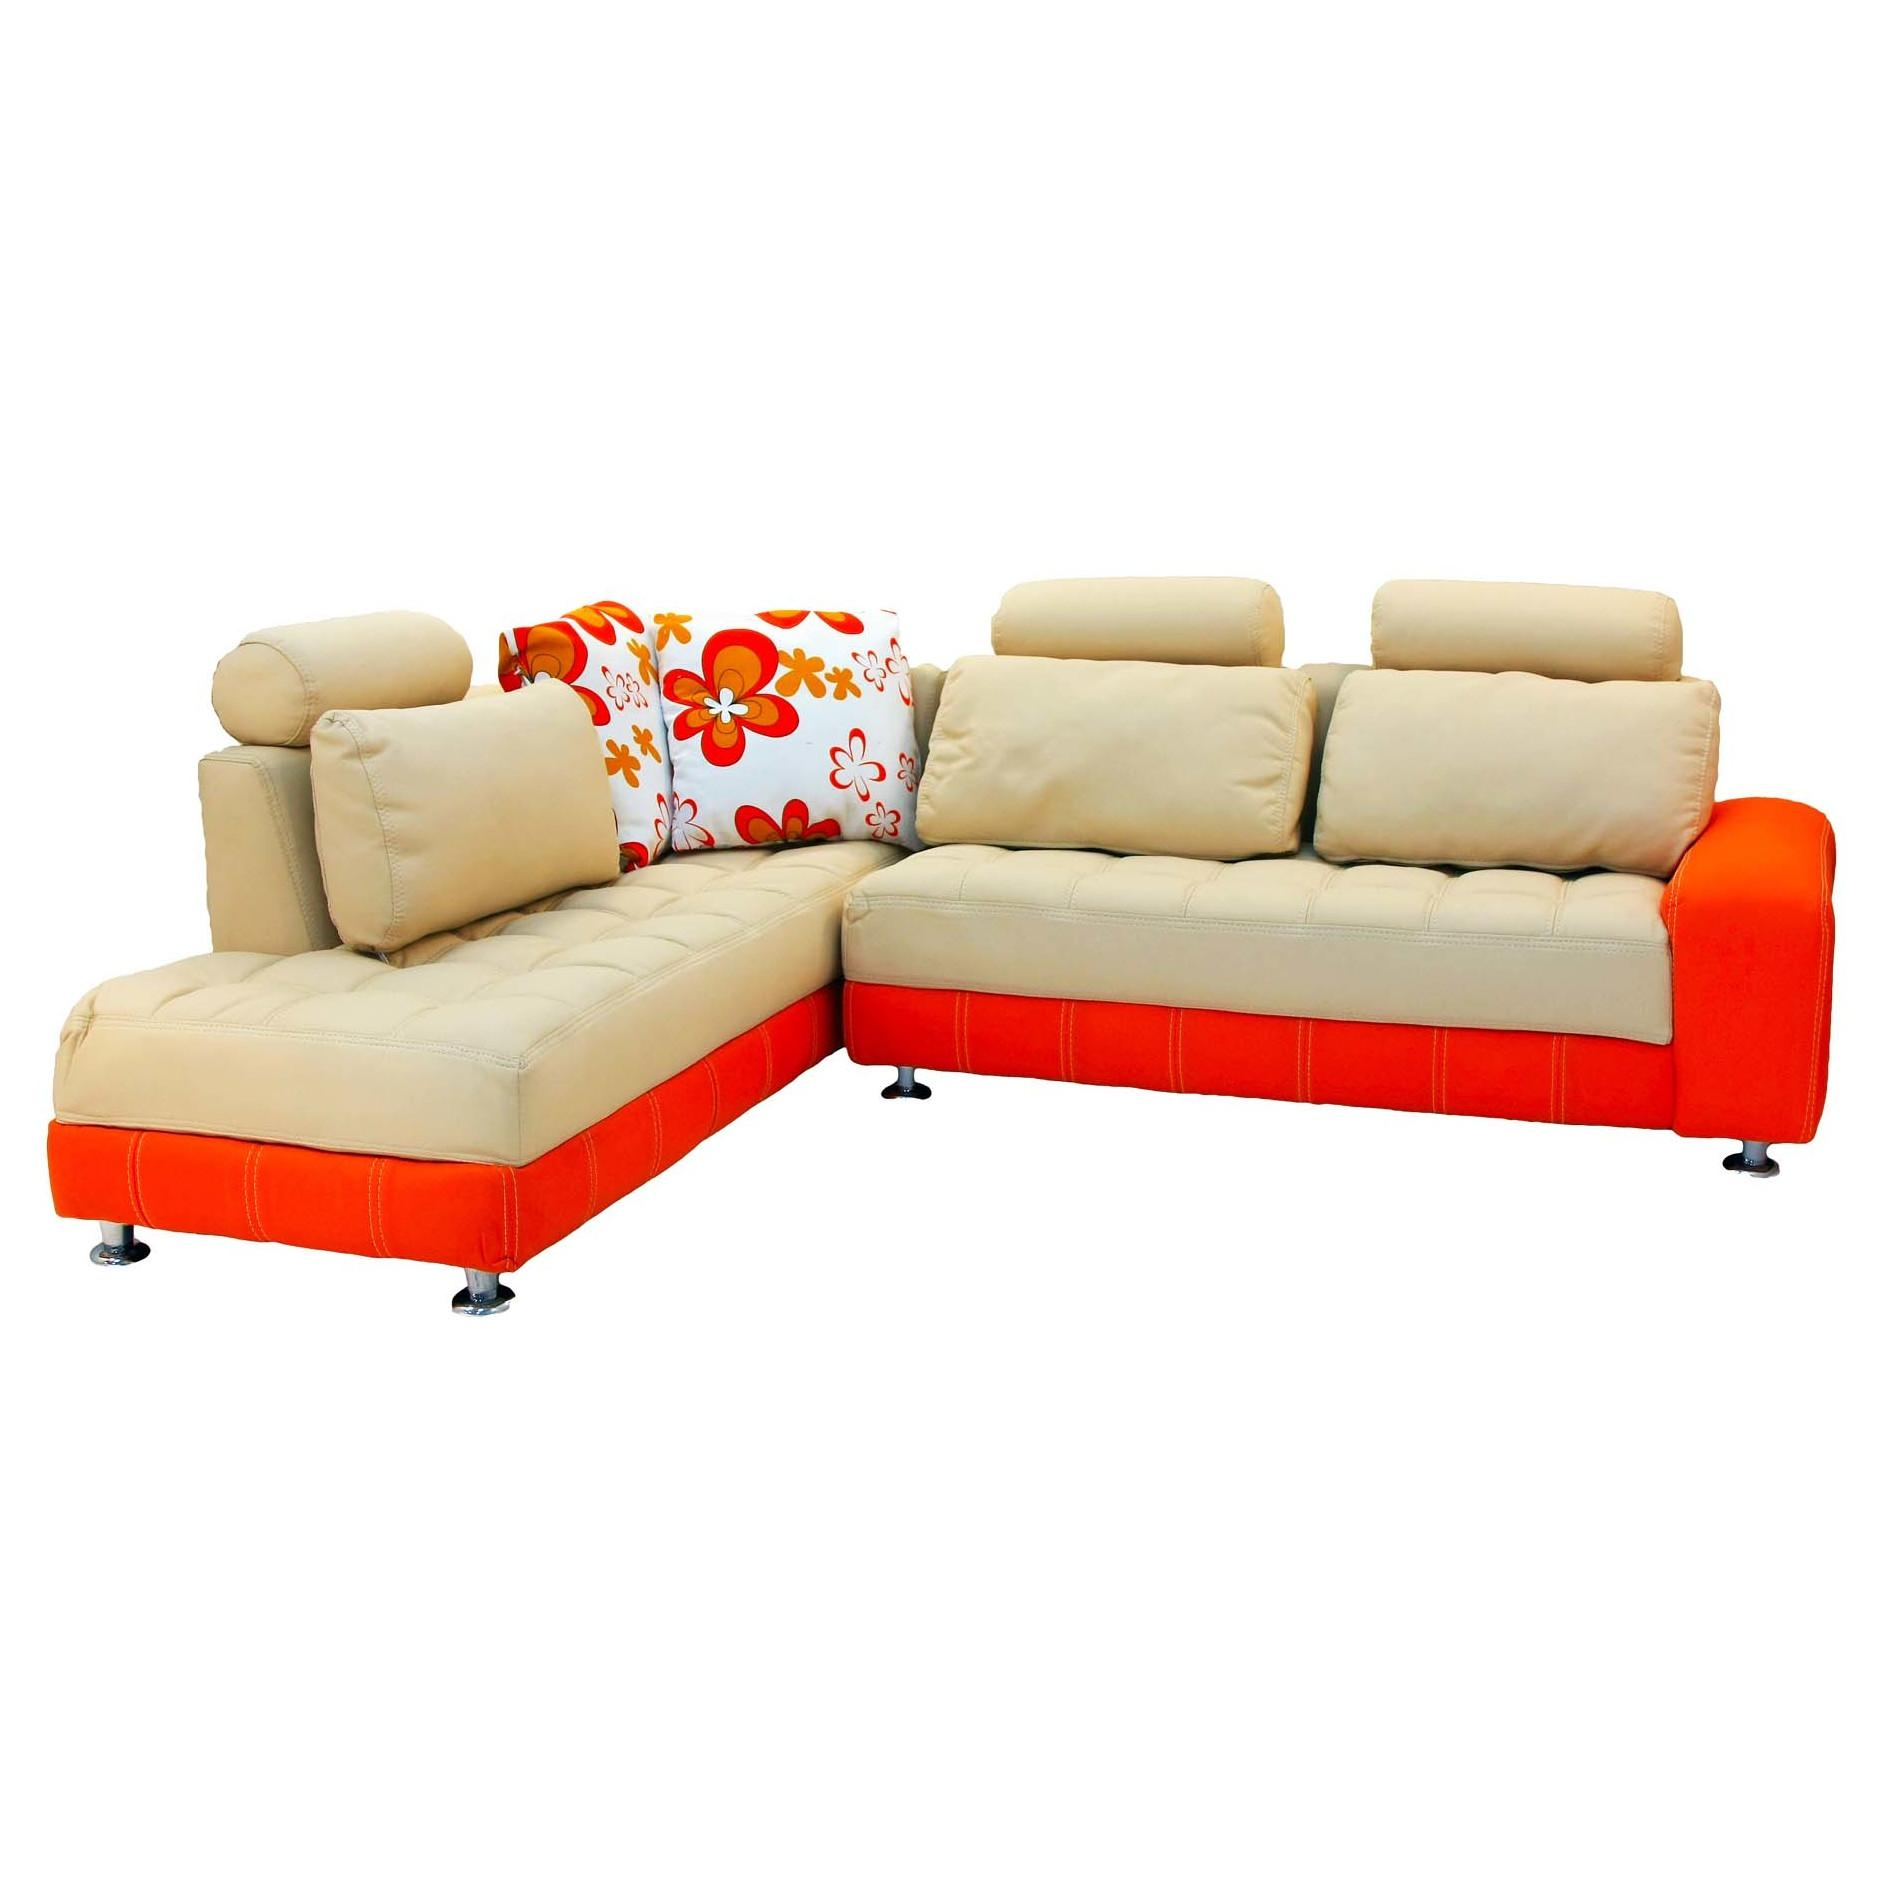 Jennifer Sofas And Sectionals - Leather Sectional Sofa intended for Jennifer Sofas